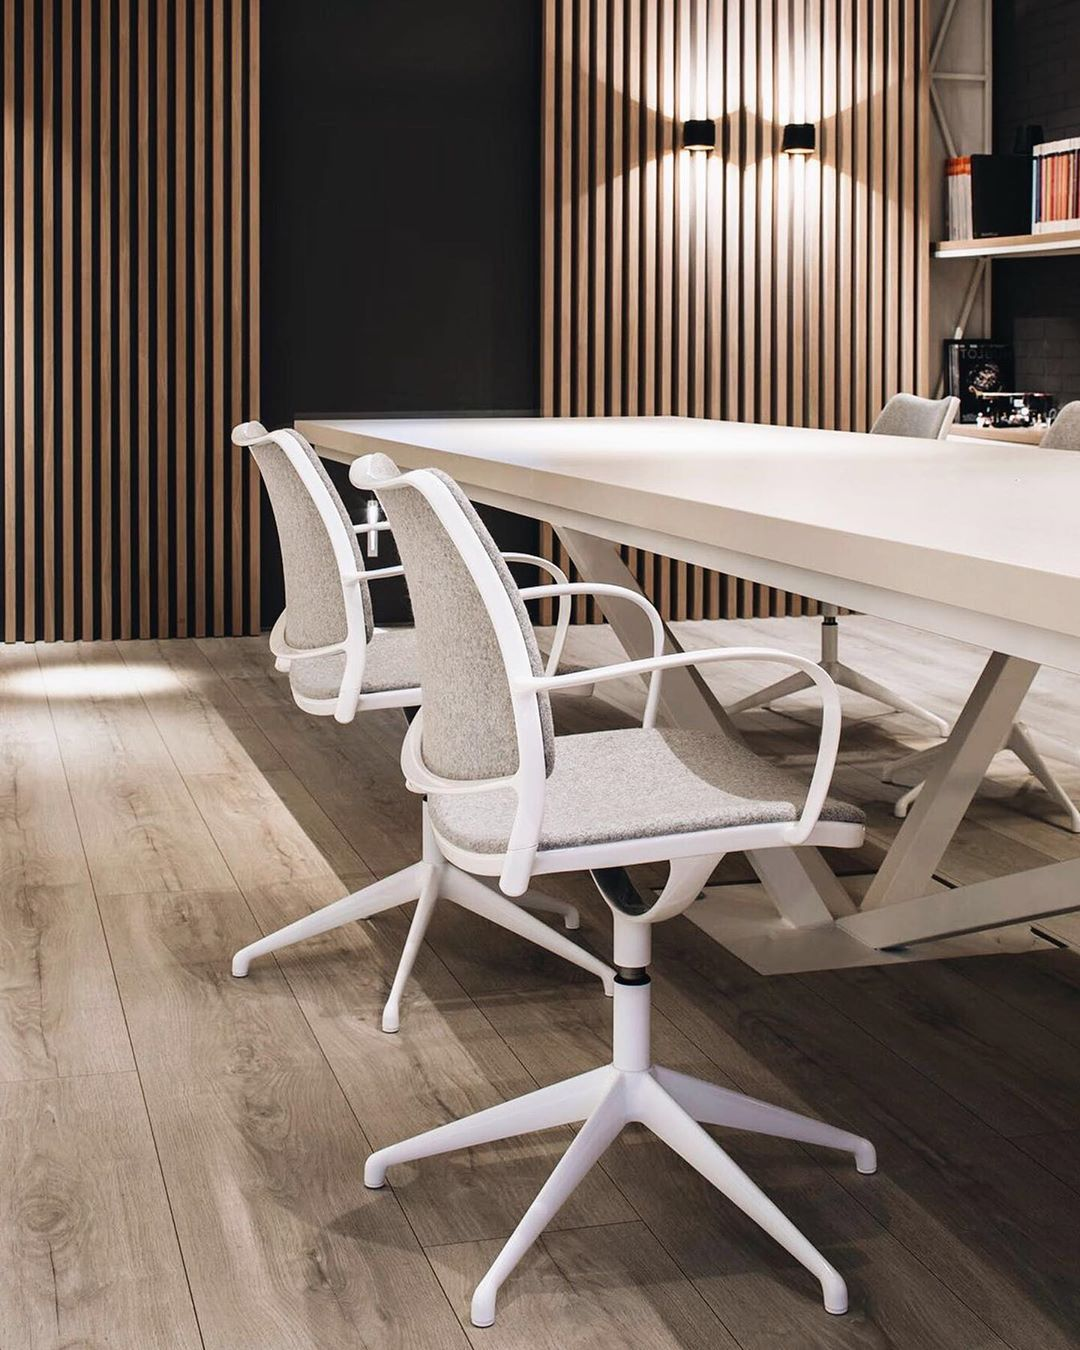 office chairs mesh Swivel chair, Chair, Light architecture